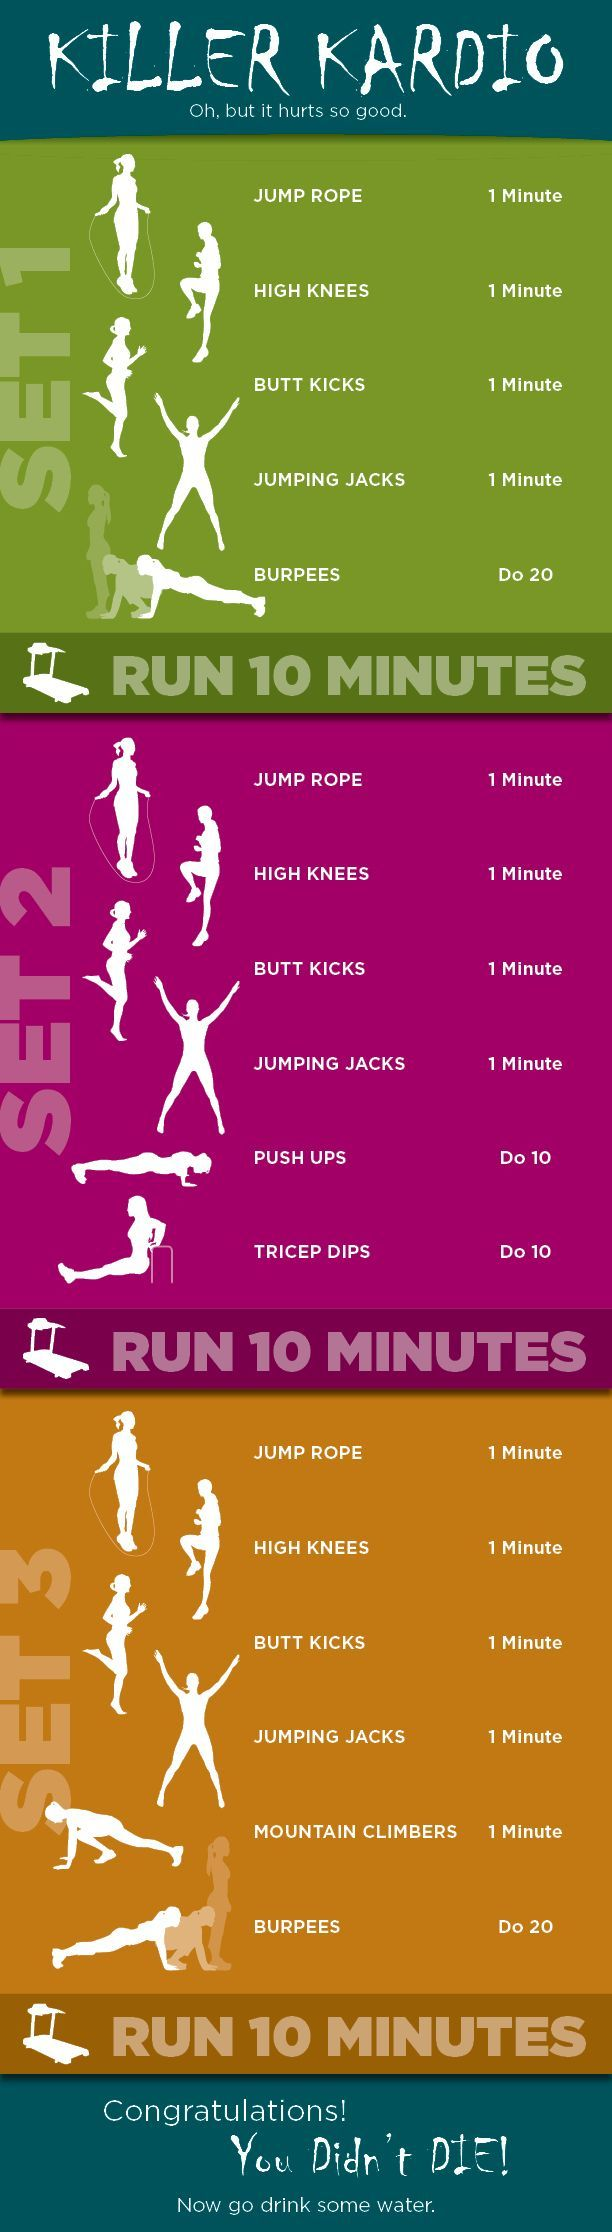 Killer Kardio Workout via @Tribesports